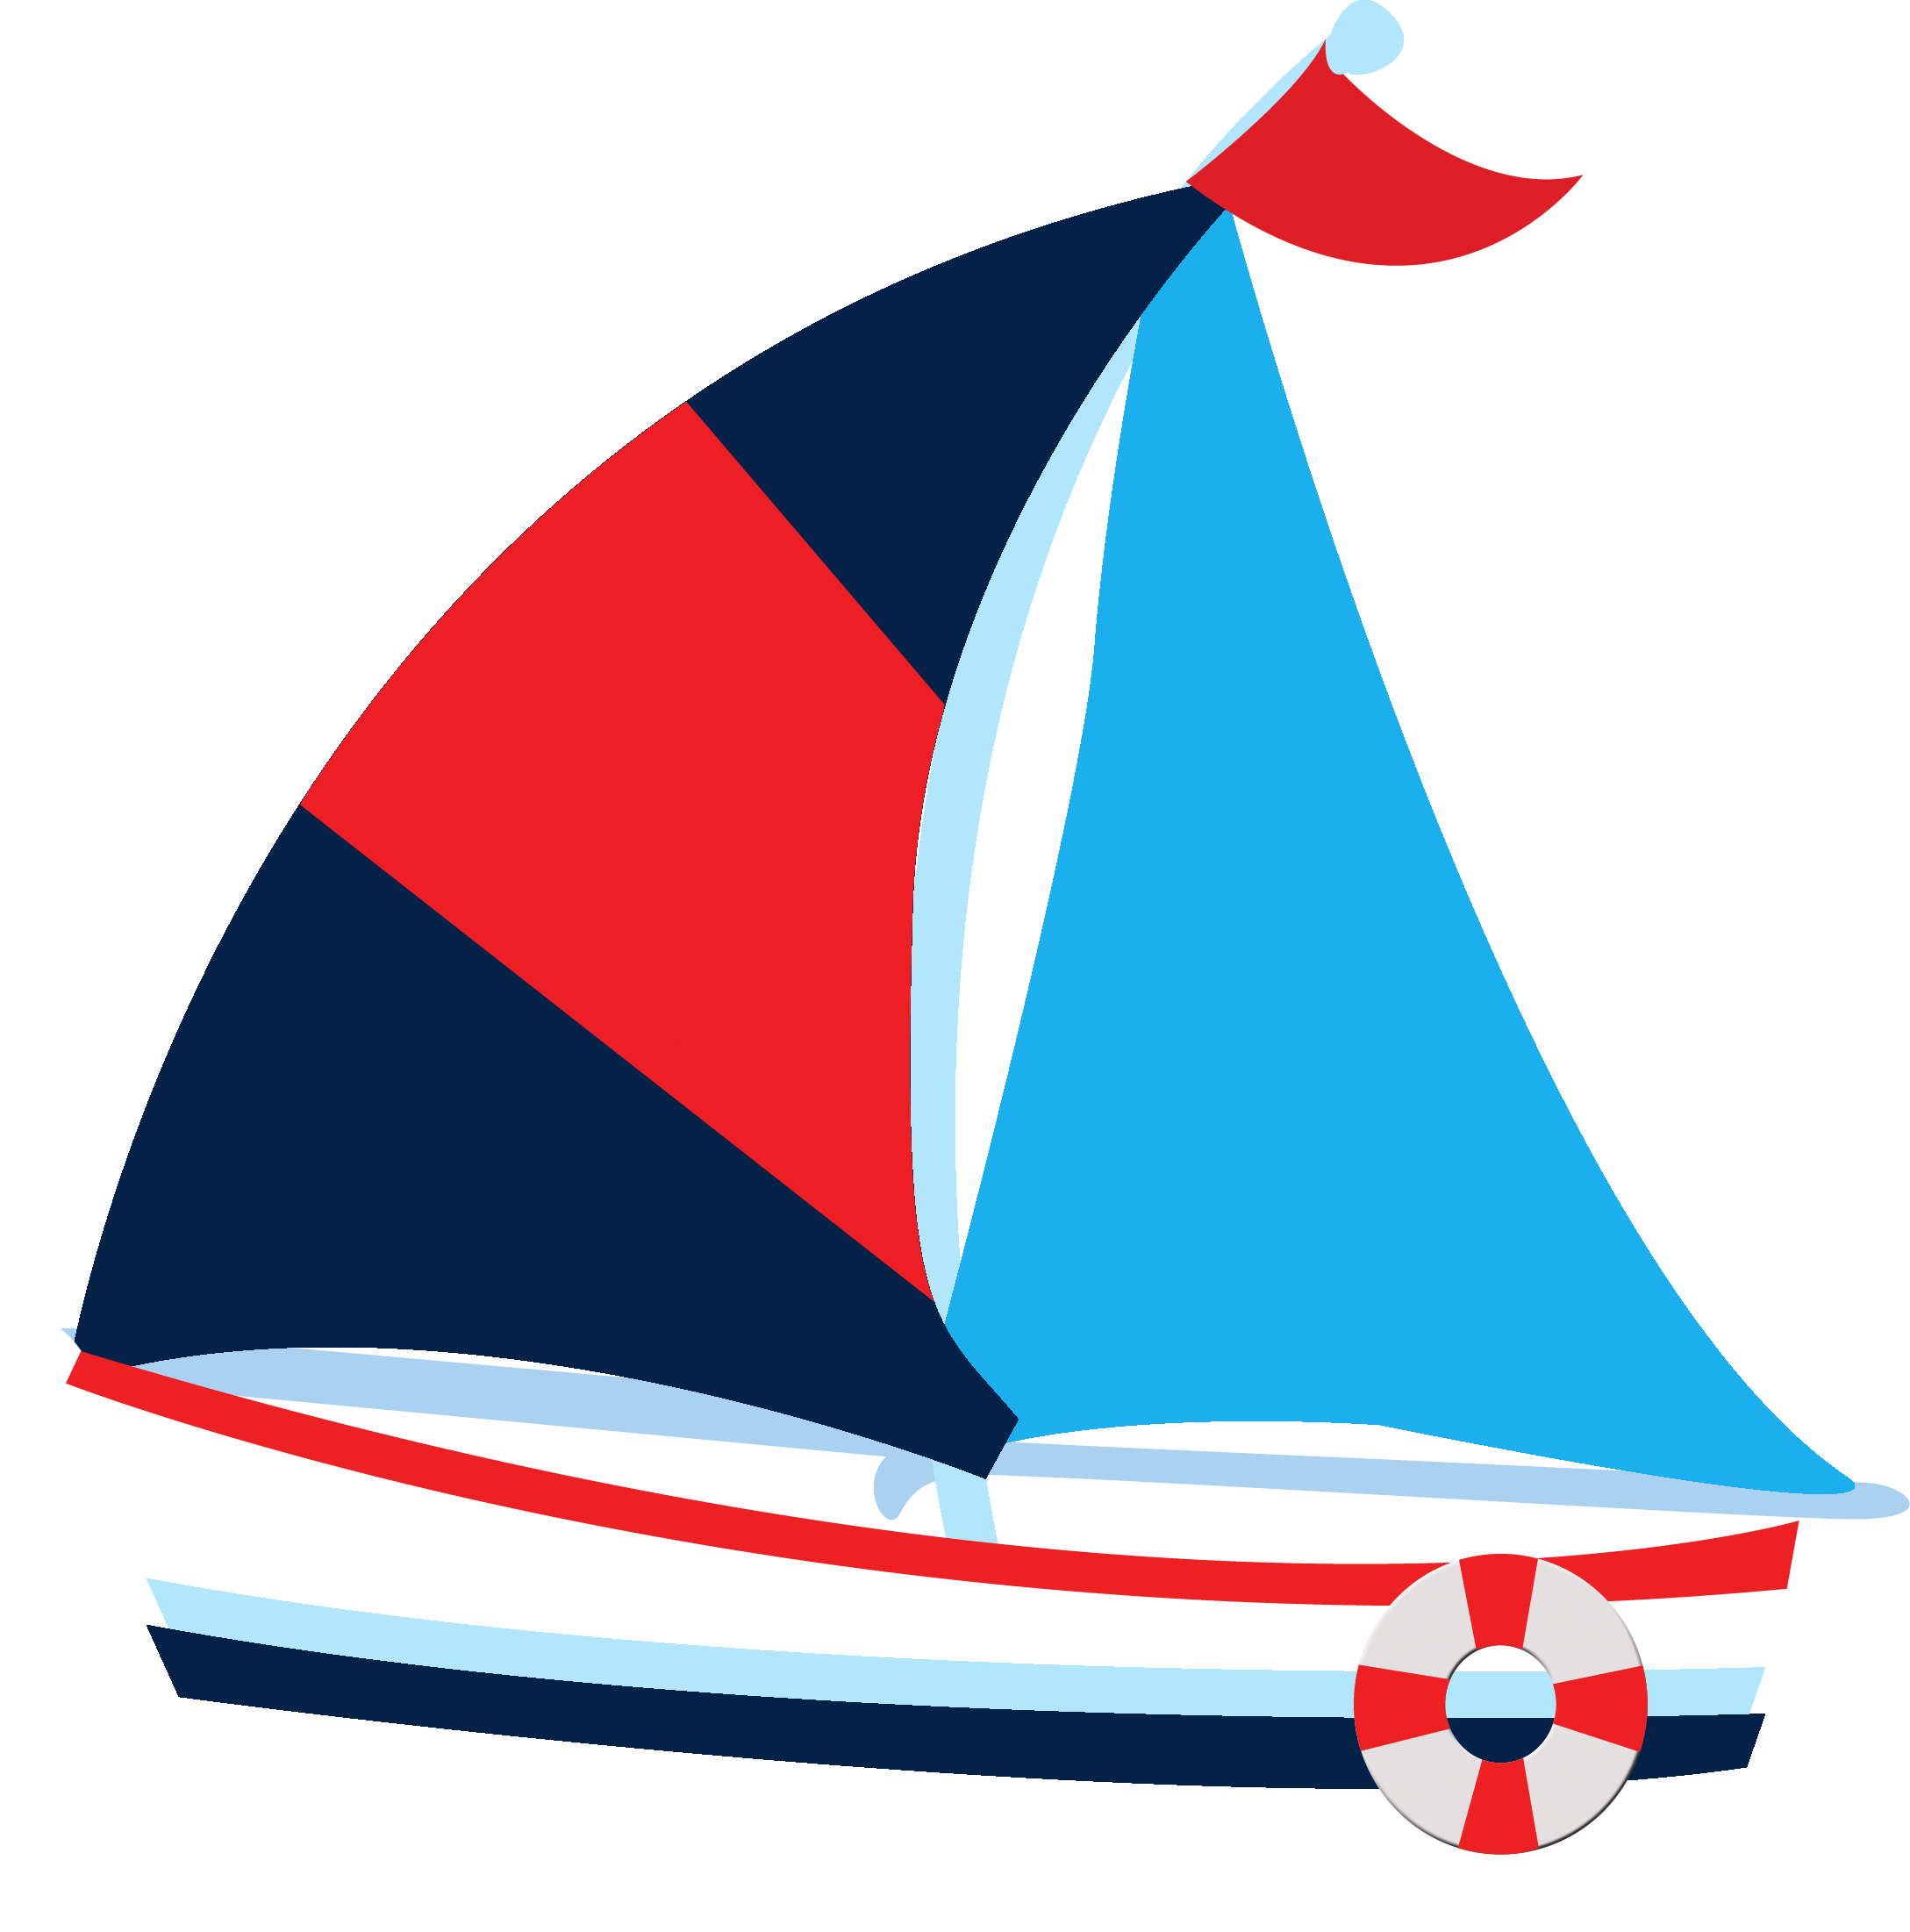 png library library Png sailing images pluspng. Yacht clipart transparent background